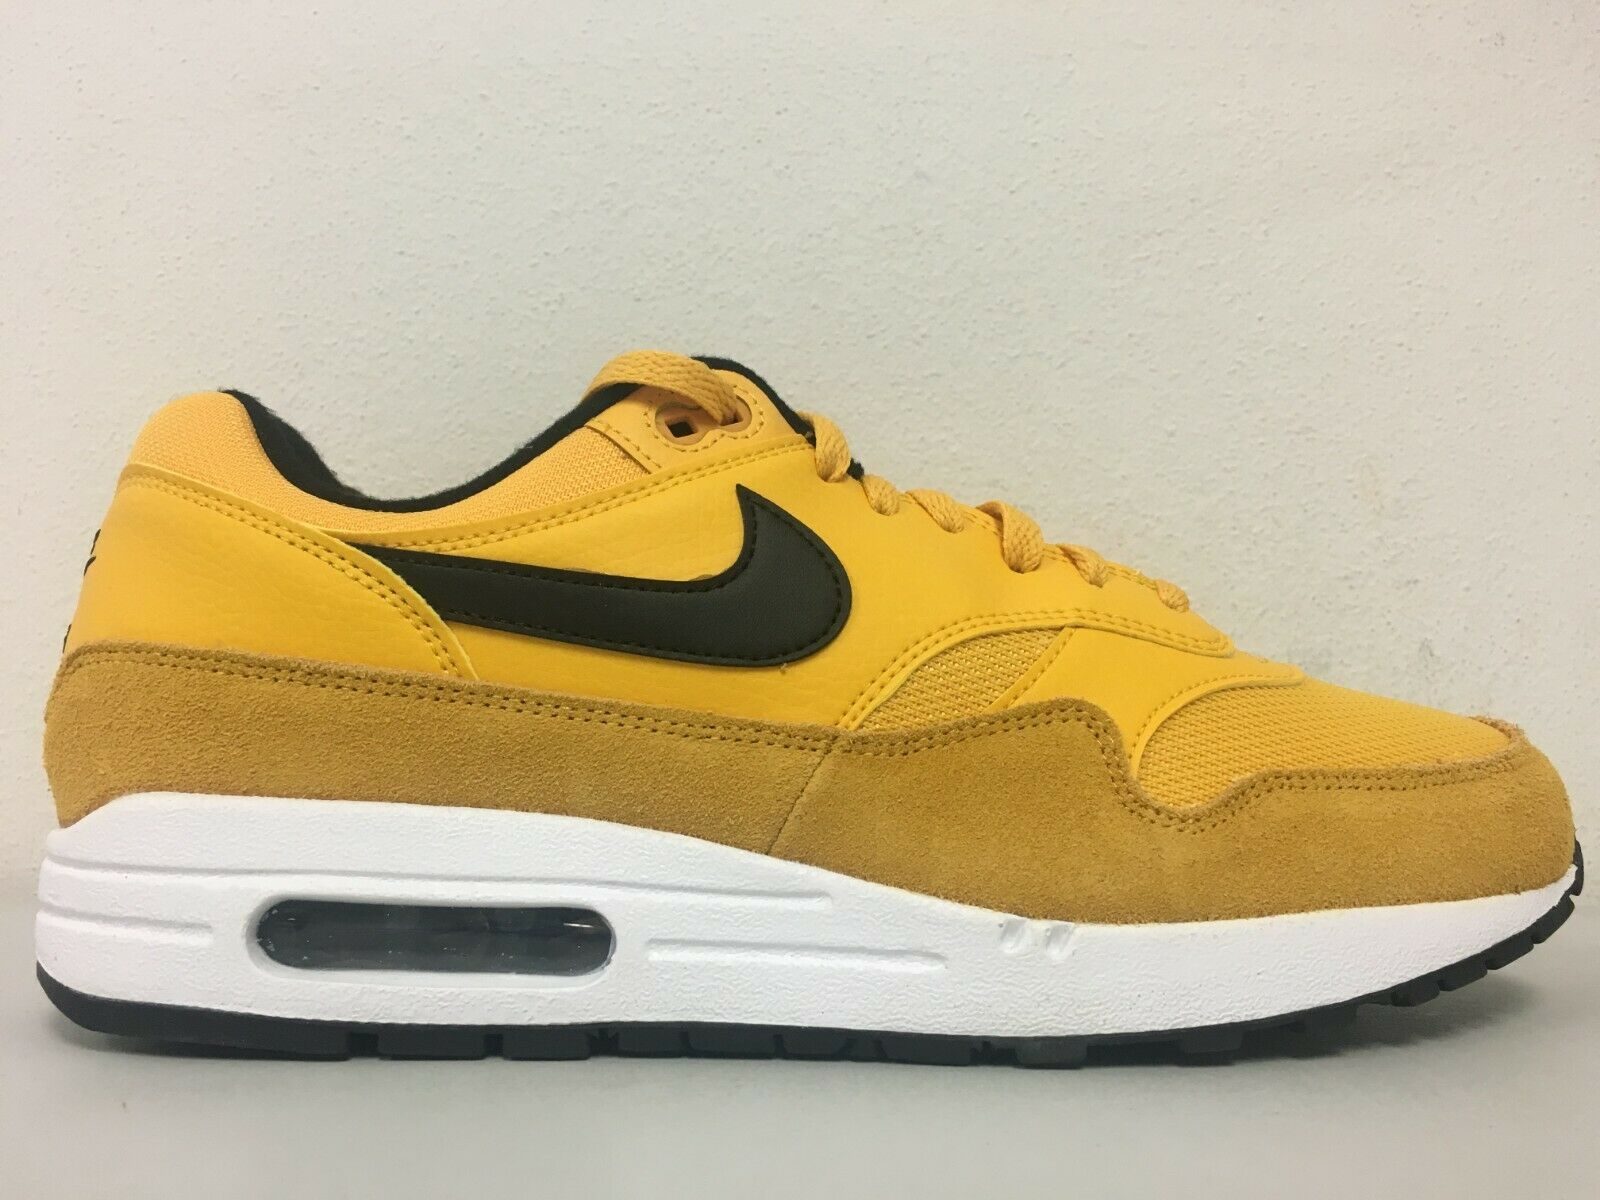 best sneakers 53531 2275a Nike Air Max 1 Premium University Gold White Black BV1254-700 Size 10.5    eBay